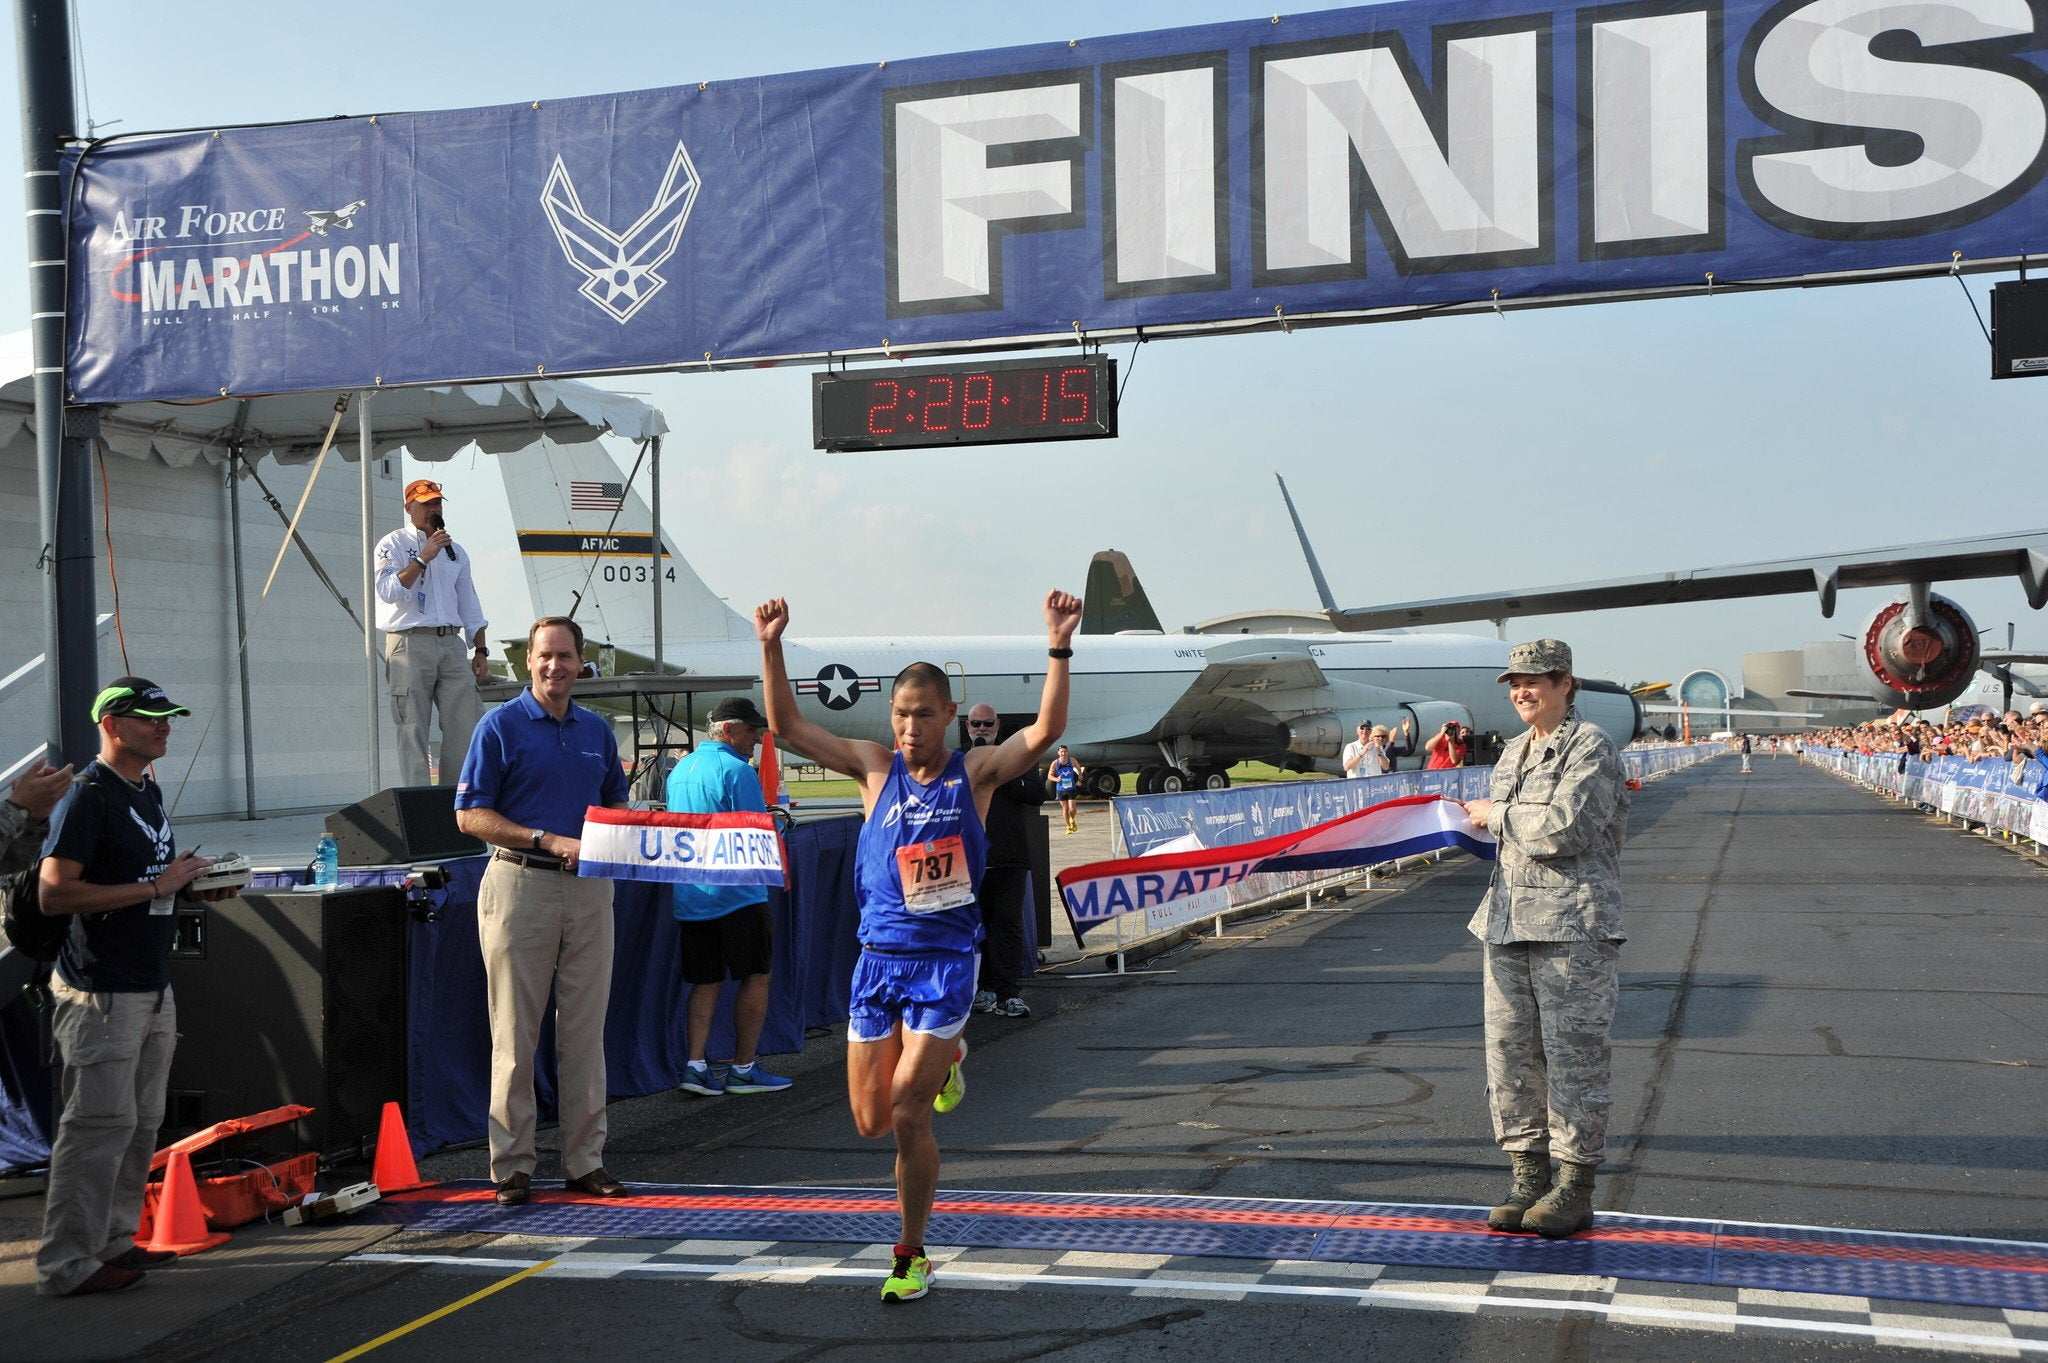 Here's how to register for the 2020 Air Force Marathon